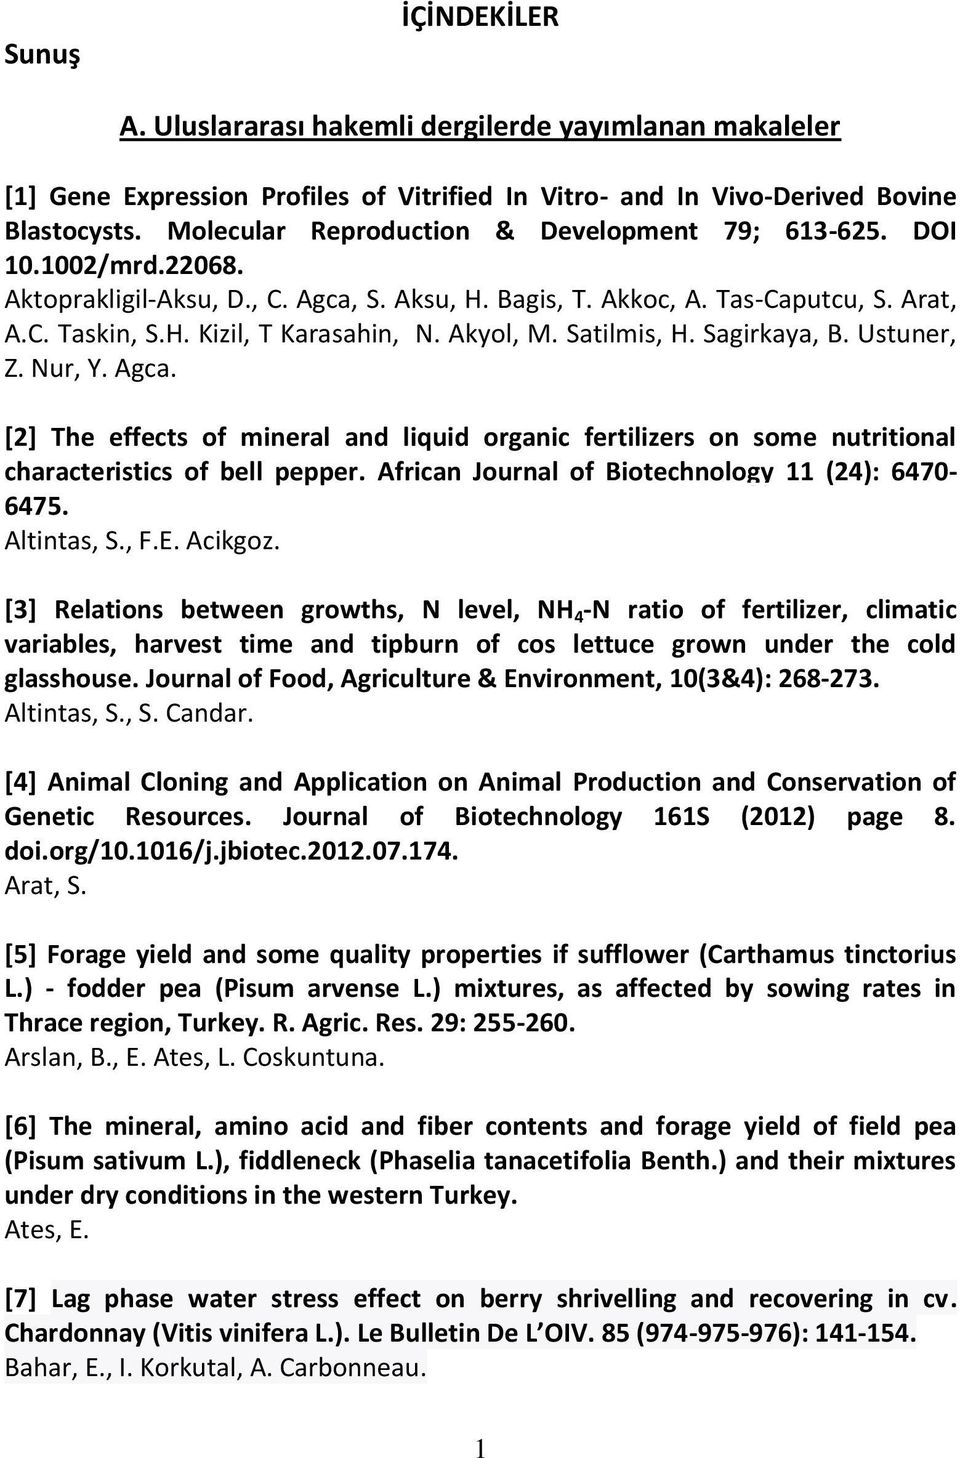 Akyol, M. Satilmis, H. Sagirkaya, B. Ustuner, Z. Nur, Y. Agca. [2] The effects of mineral and liquid organic fertilizers on some nutritional characteristics of bell pepper.